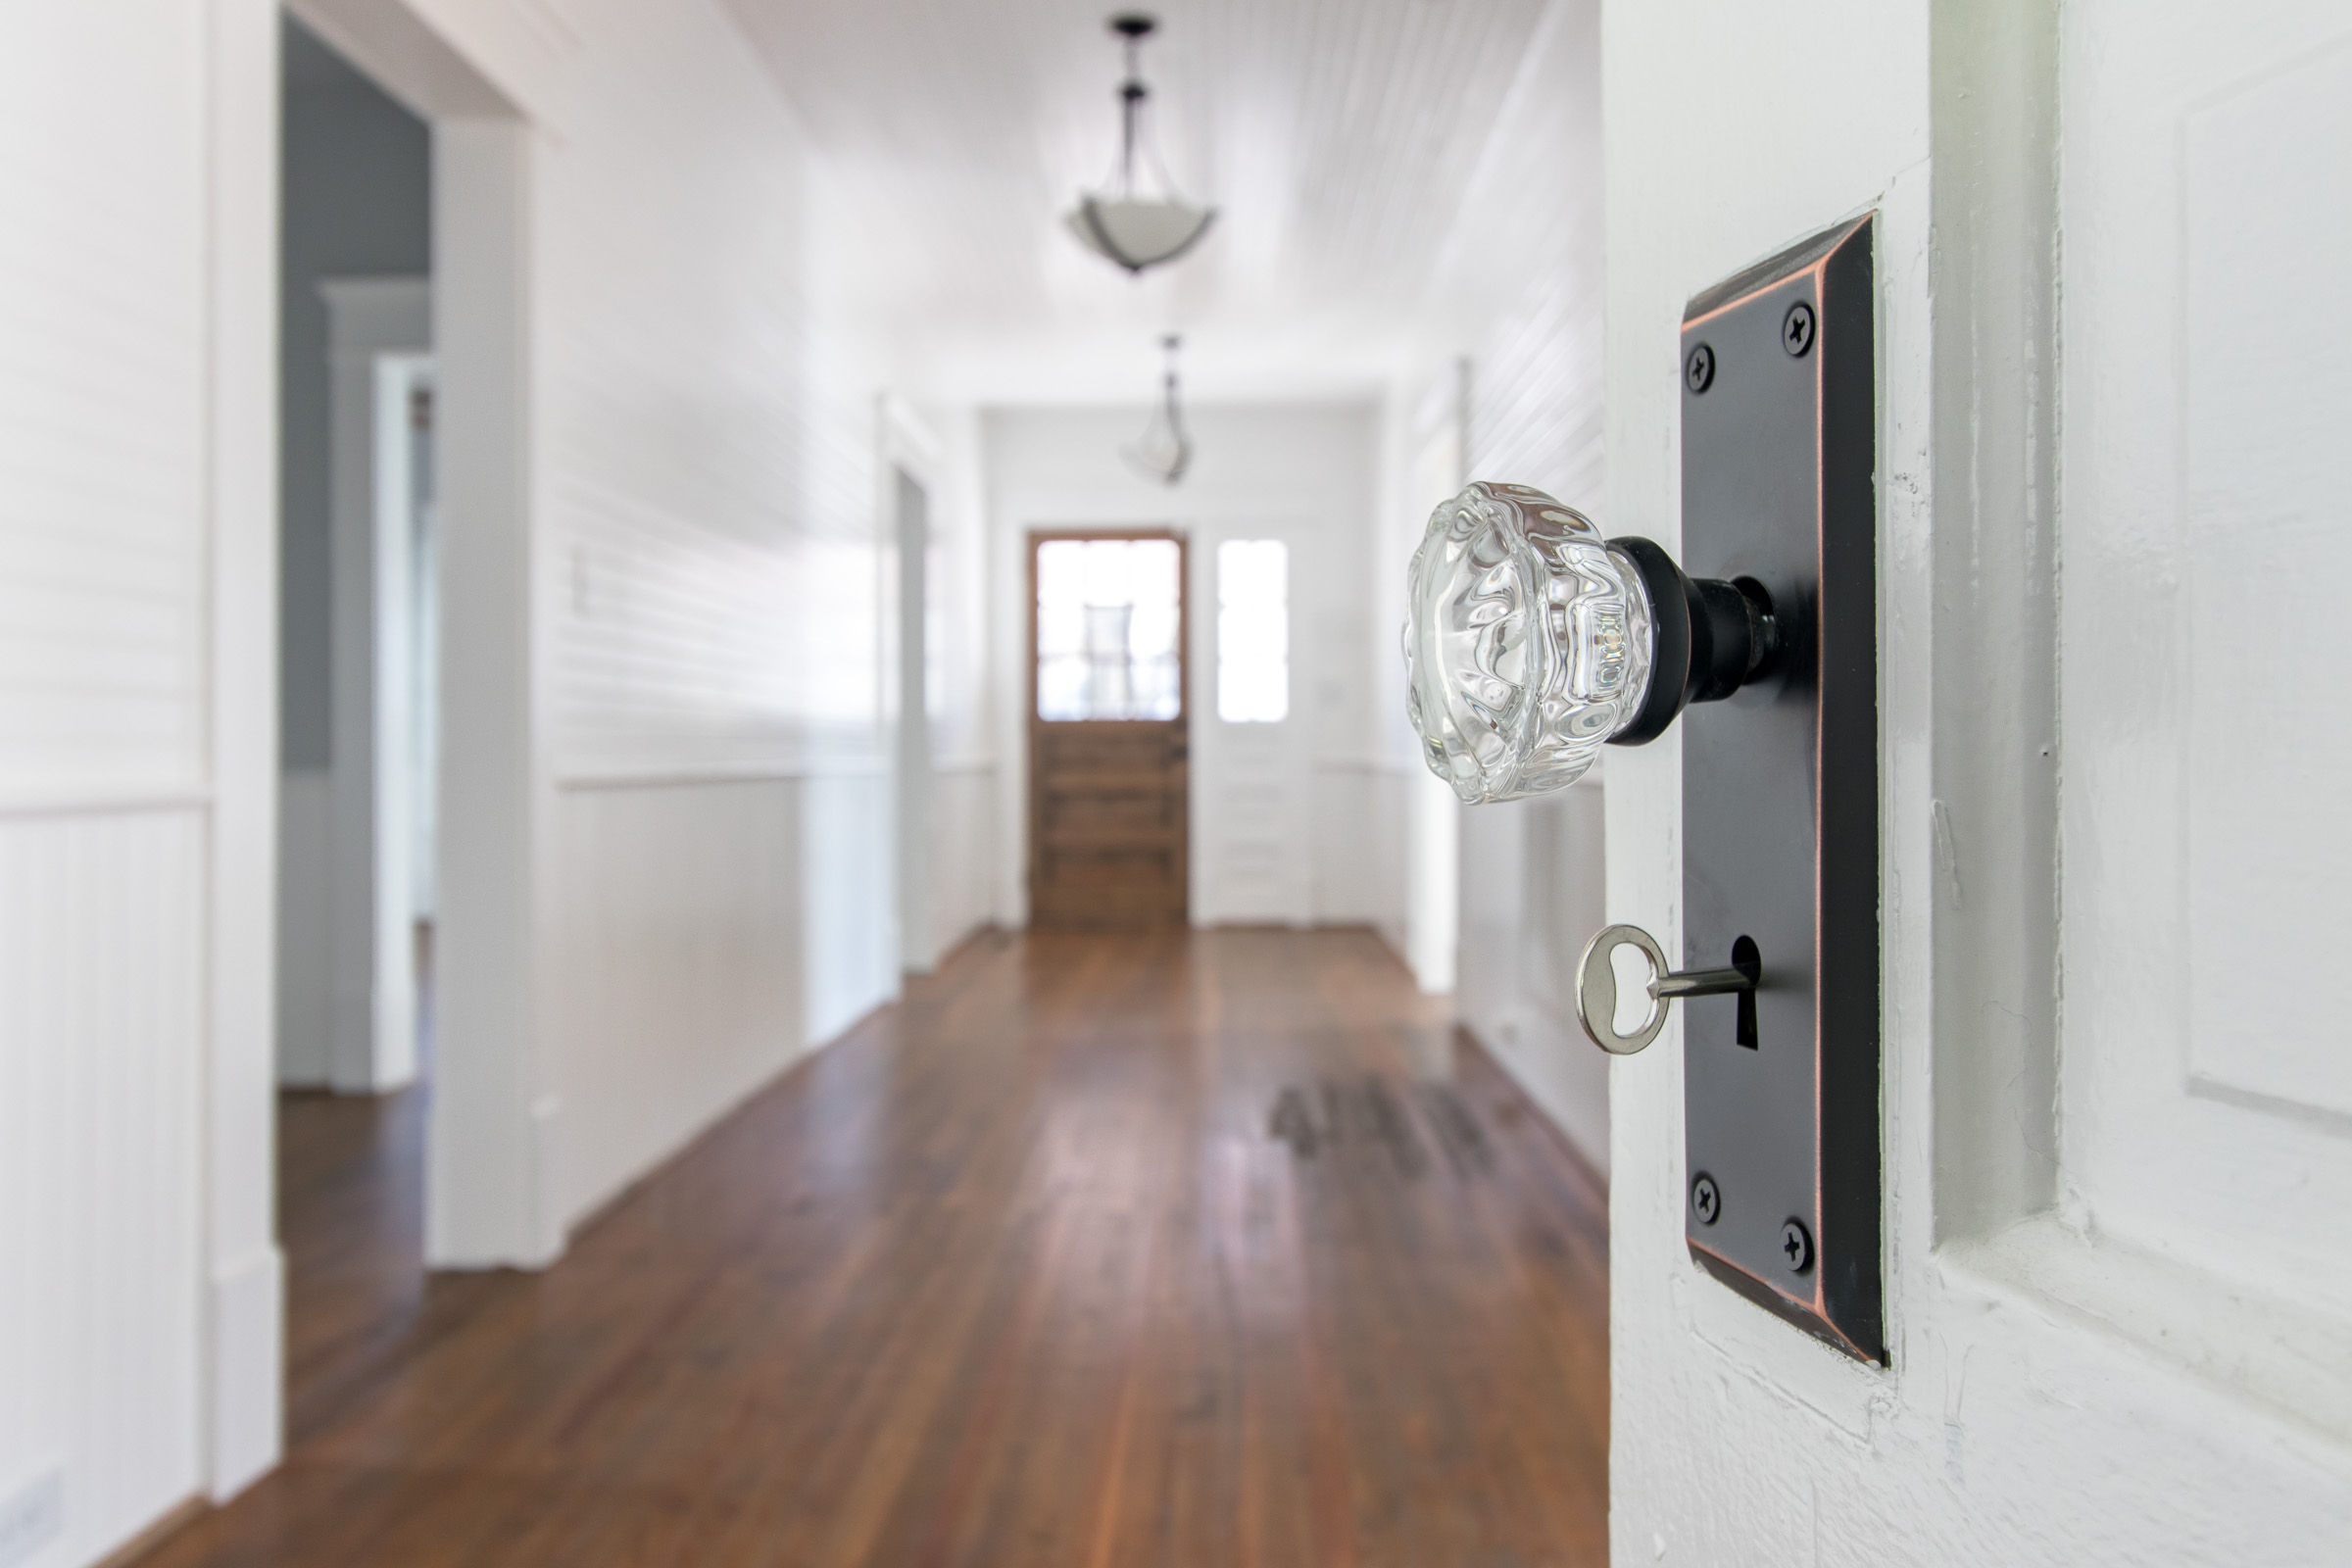 Restored home's spacious entry way with vintage details like this keyed glass door knob.